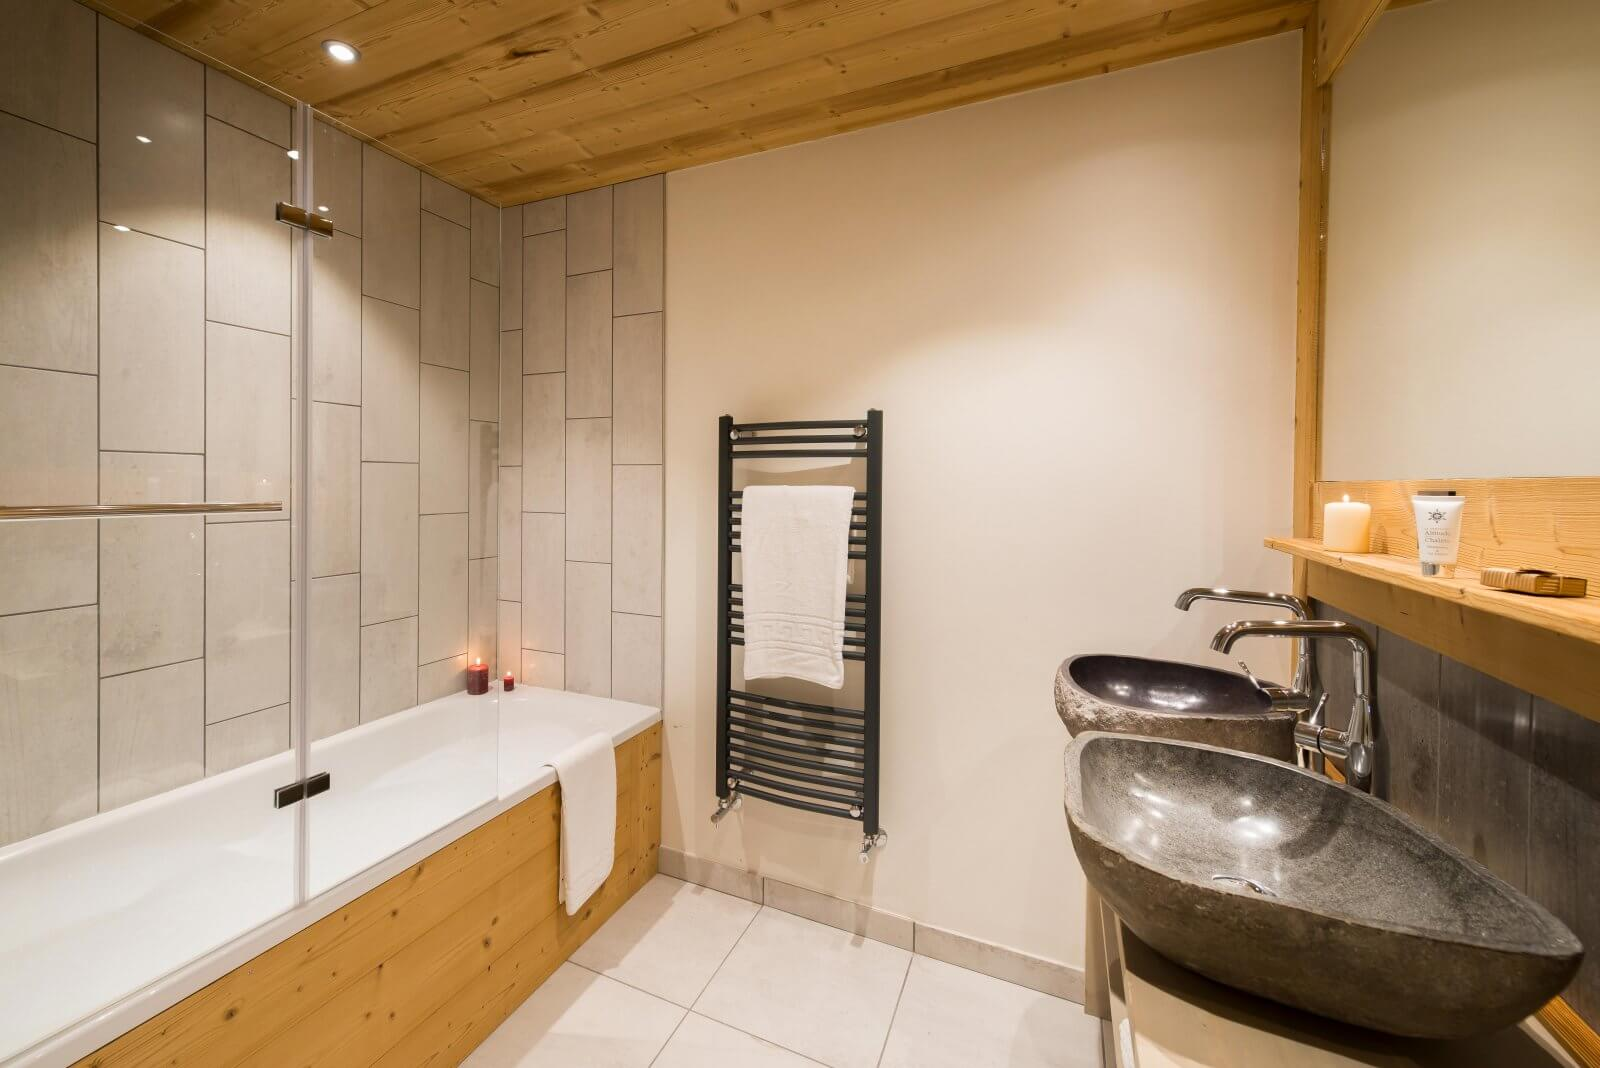 One of the bathrooms in the residence with a bath